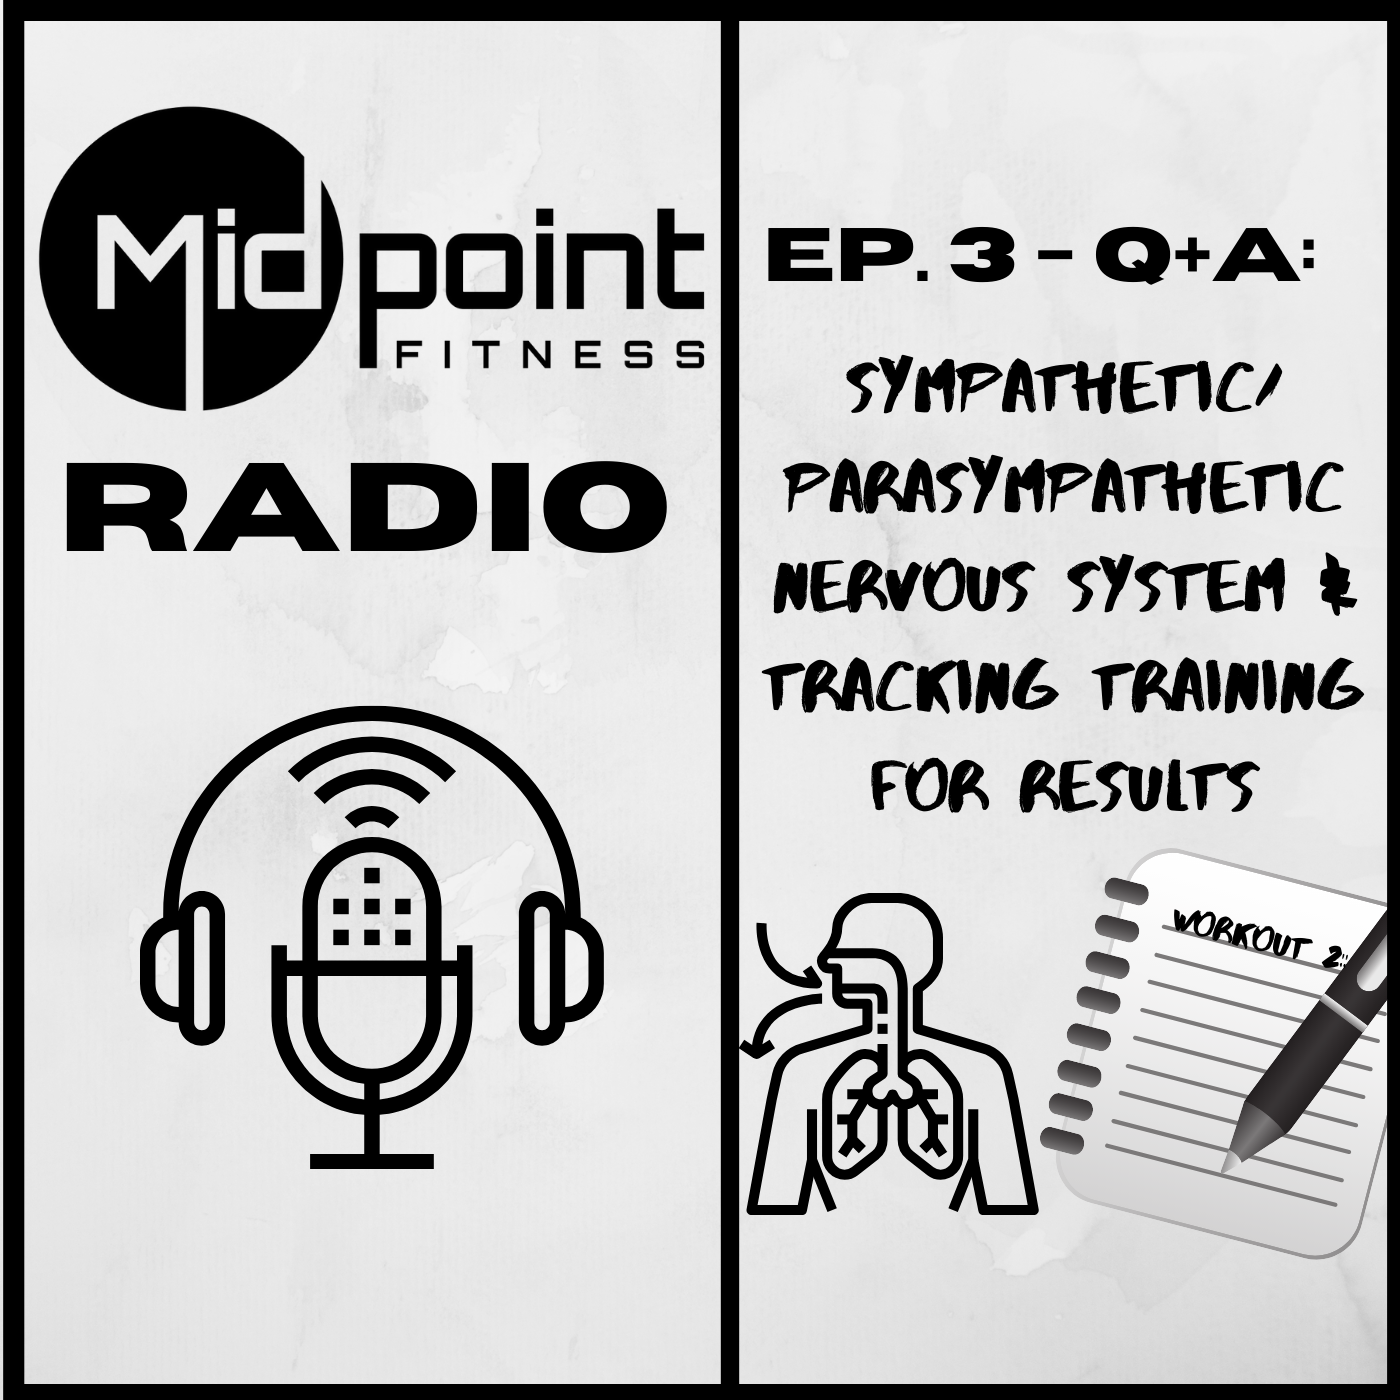 Ep. 3 – Q+A: Sympathetic/Parasympathetic Nervous System & Tracking Training for Results